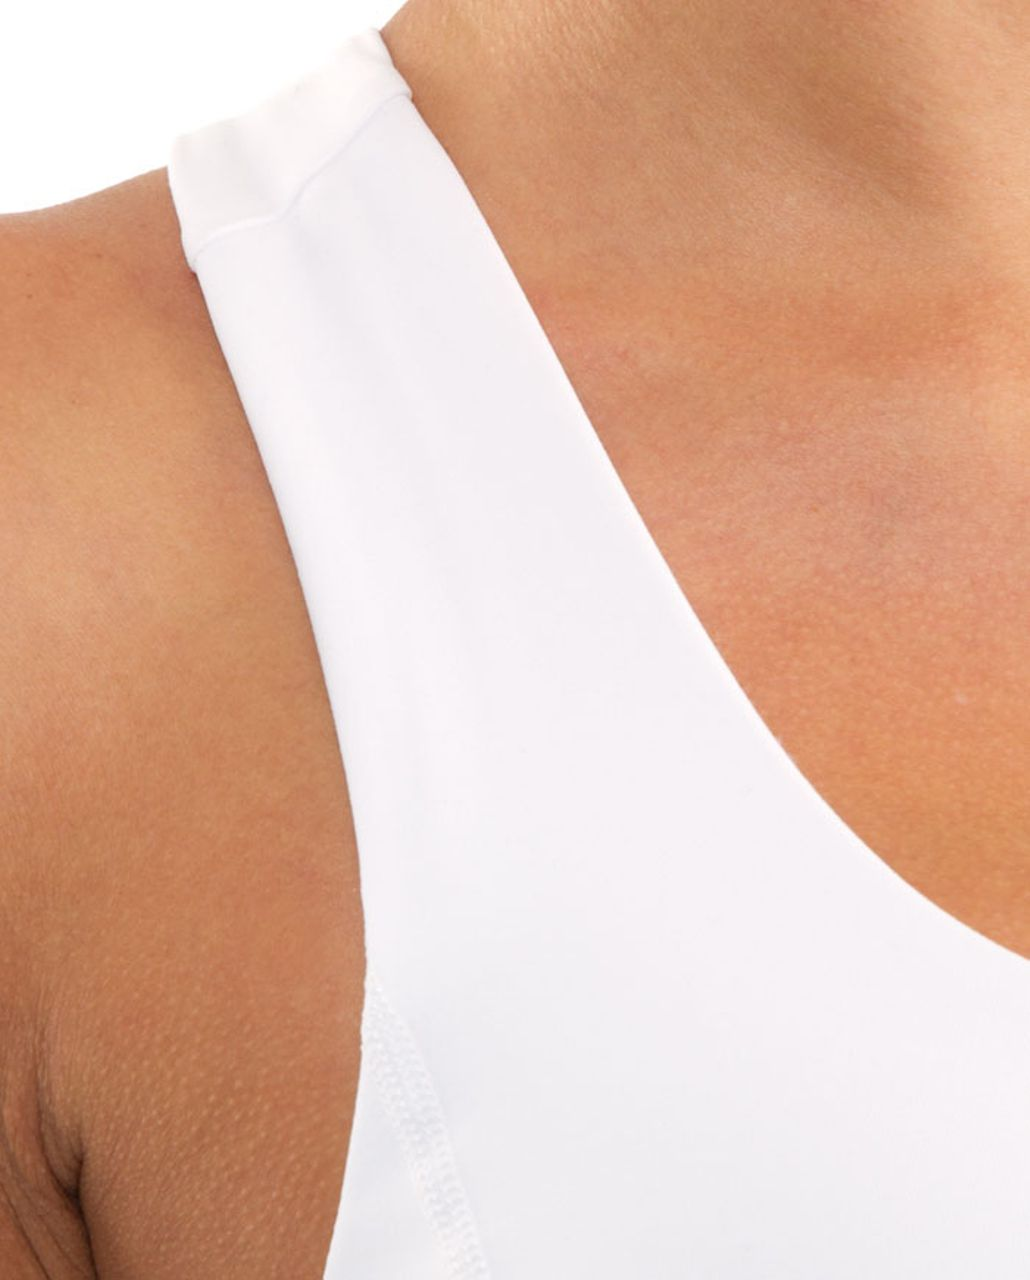 Lululemon Run:  Your Heart Out Tank - Heathered Blurred Grey /  White